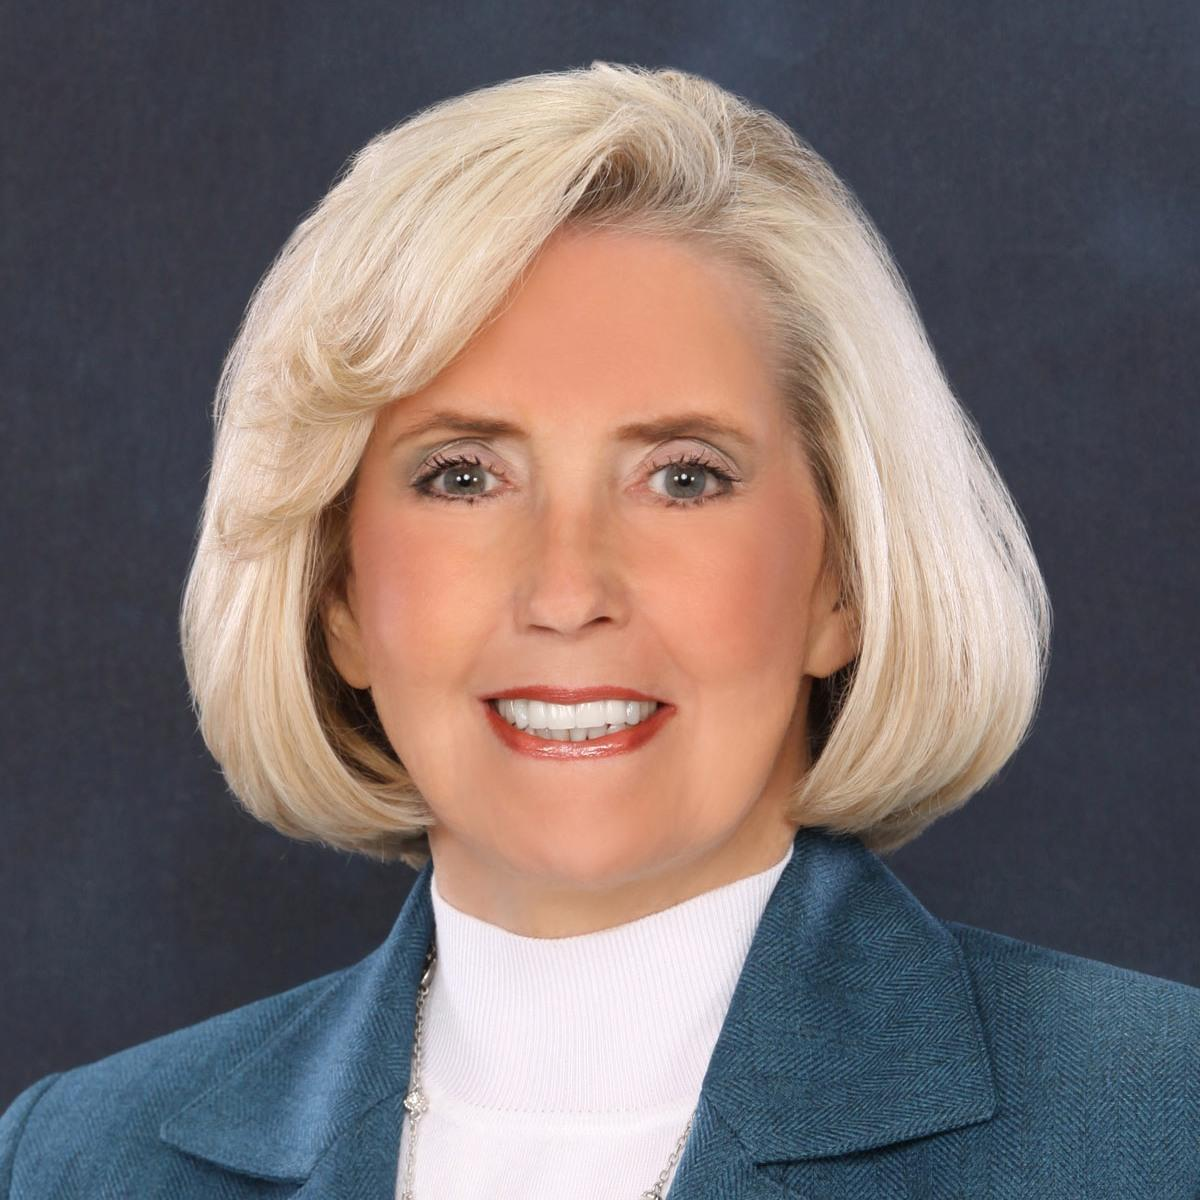 lilly ledbetter Danae king the columbus dispatch @danaeking lilly ledbetter isn't done fighting for equal pay for women, nor is she done encouraging others to do the same.